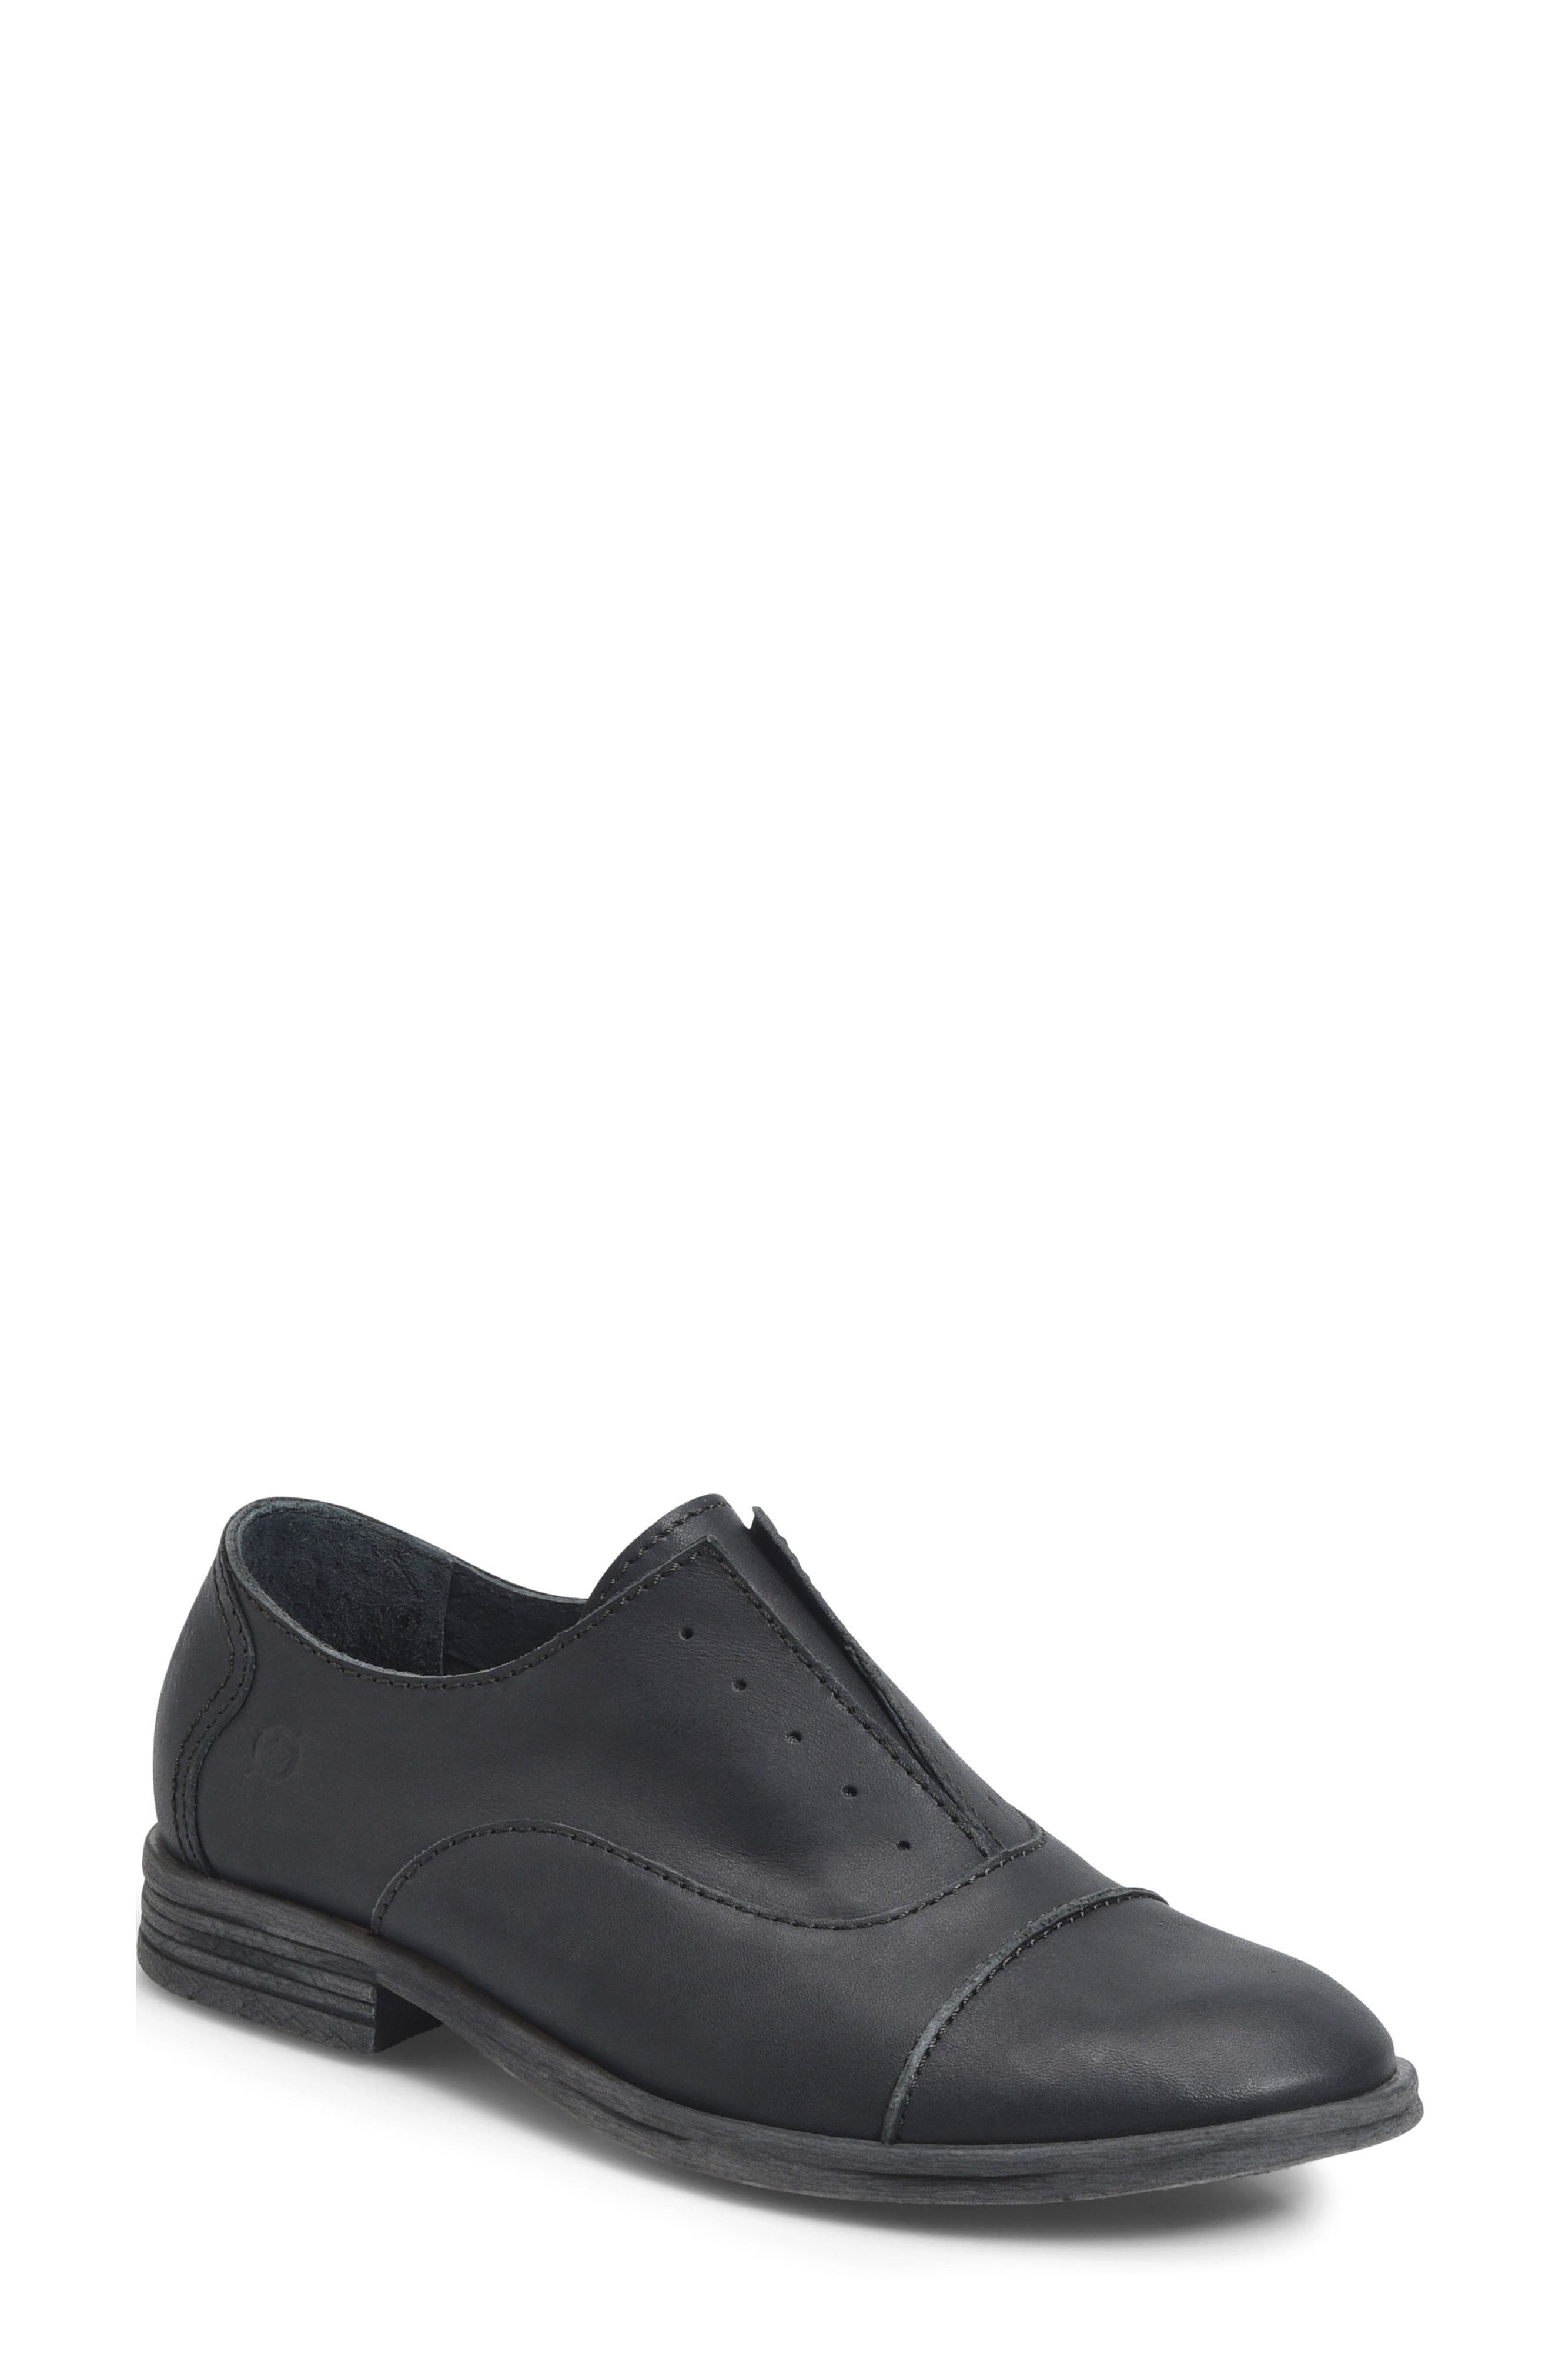 BØRN,                             Forato Slip-On Oxford,                             Main thumbnail 1, color,                             001